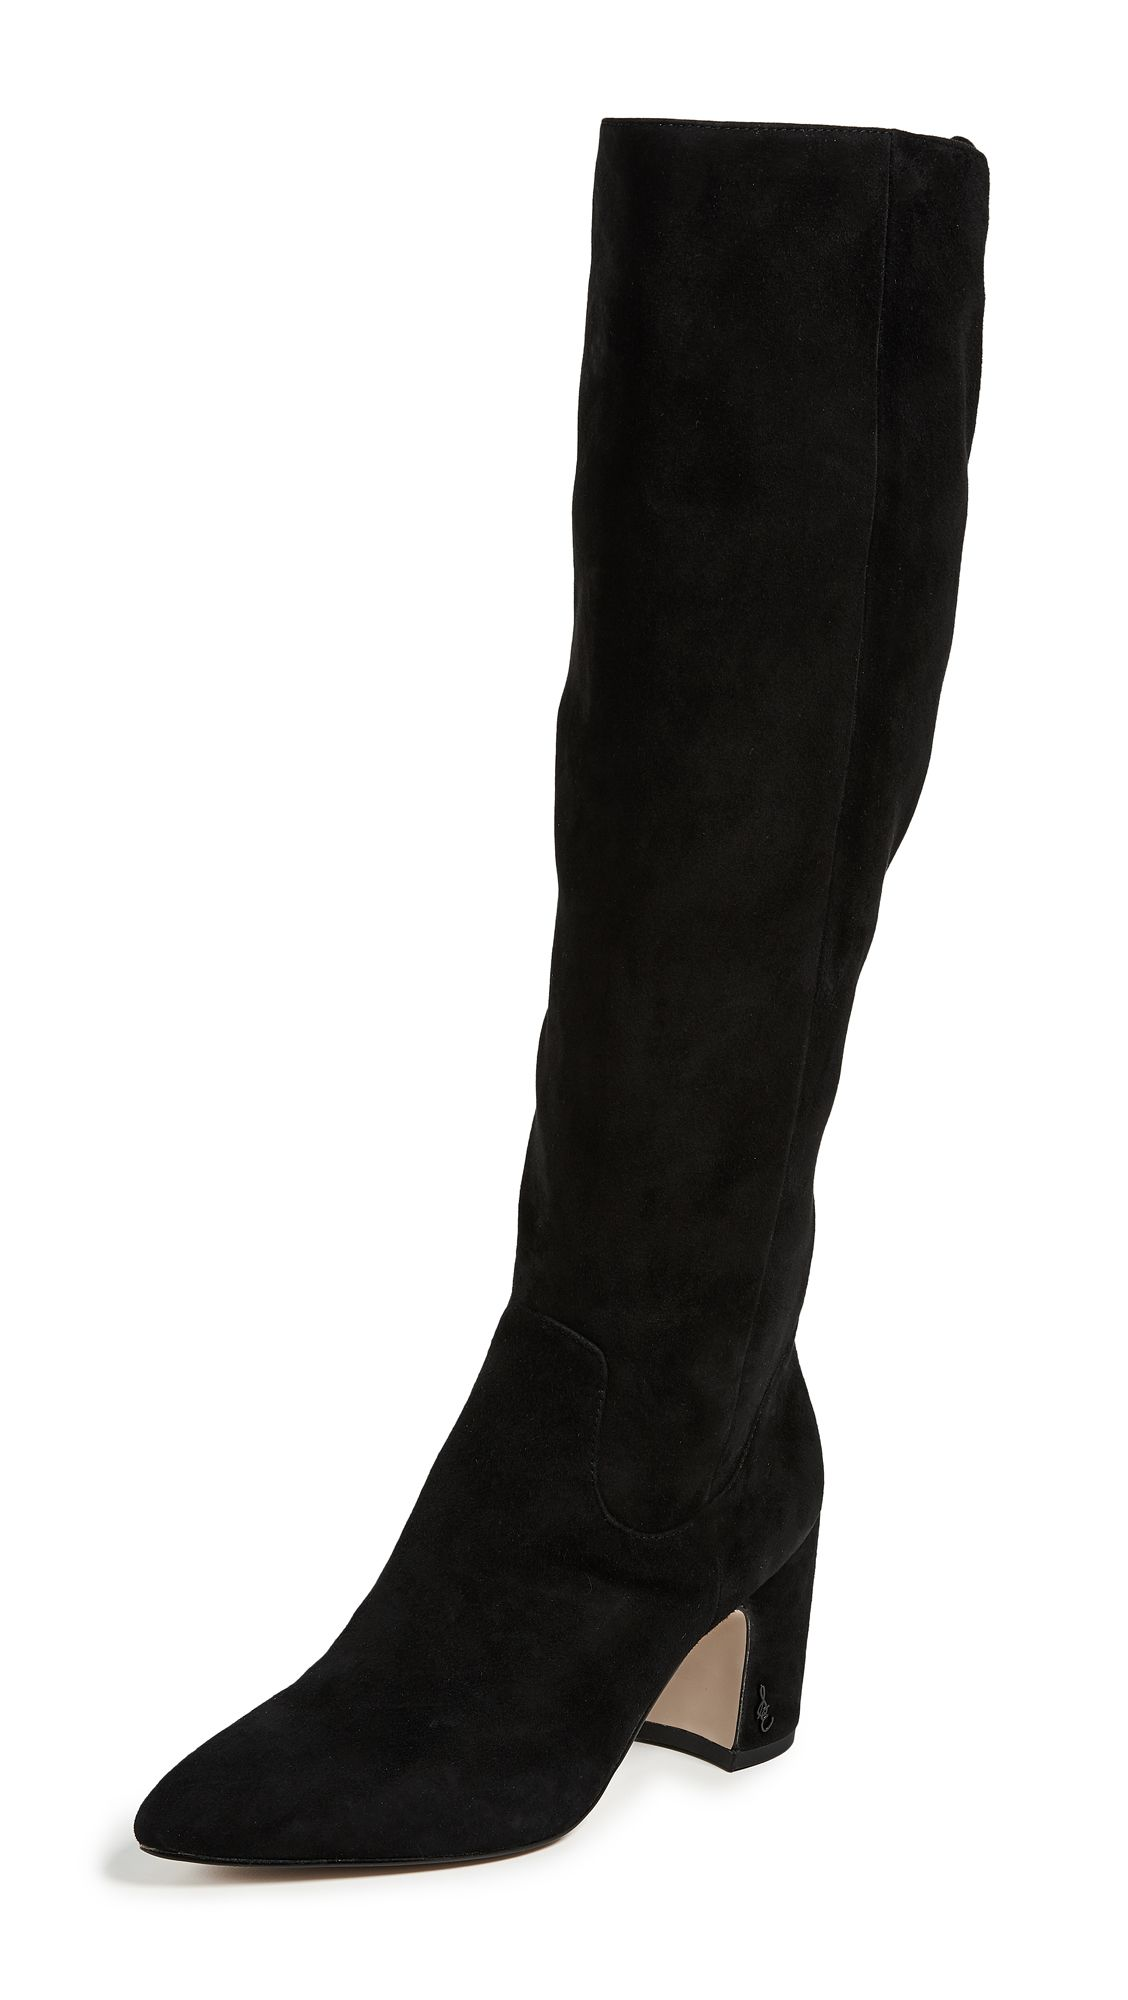 f80538200bc25 SAM EDELMAN HAI TALL BOOTS.  samedelman  shoes